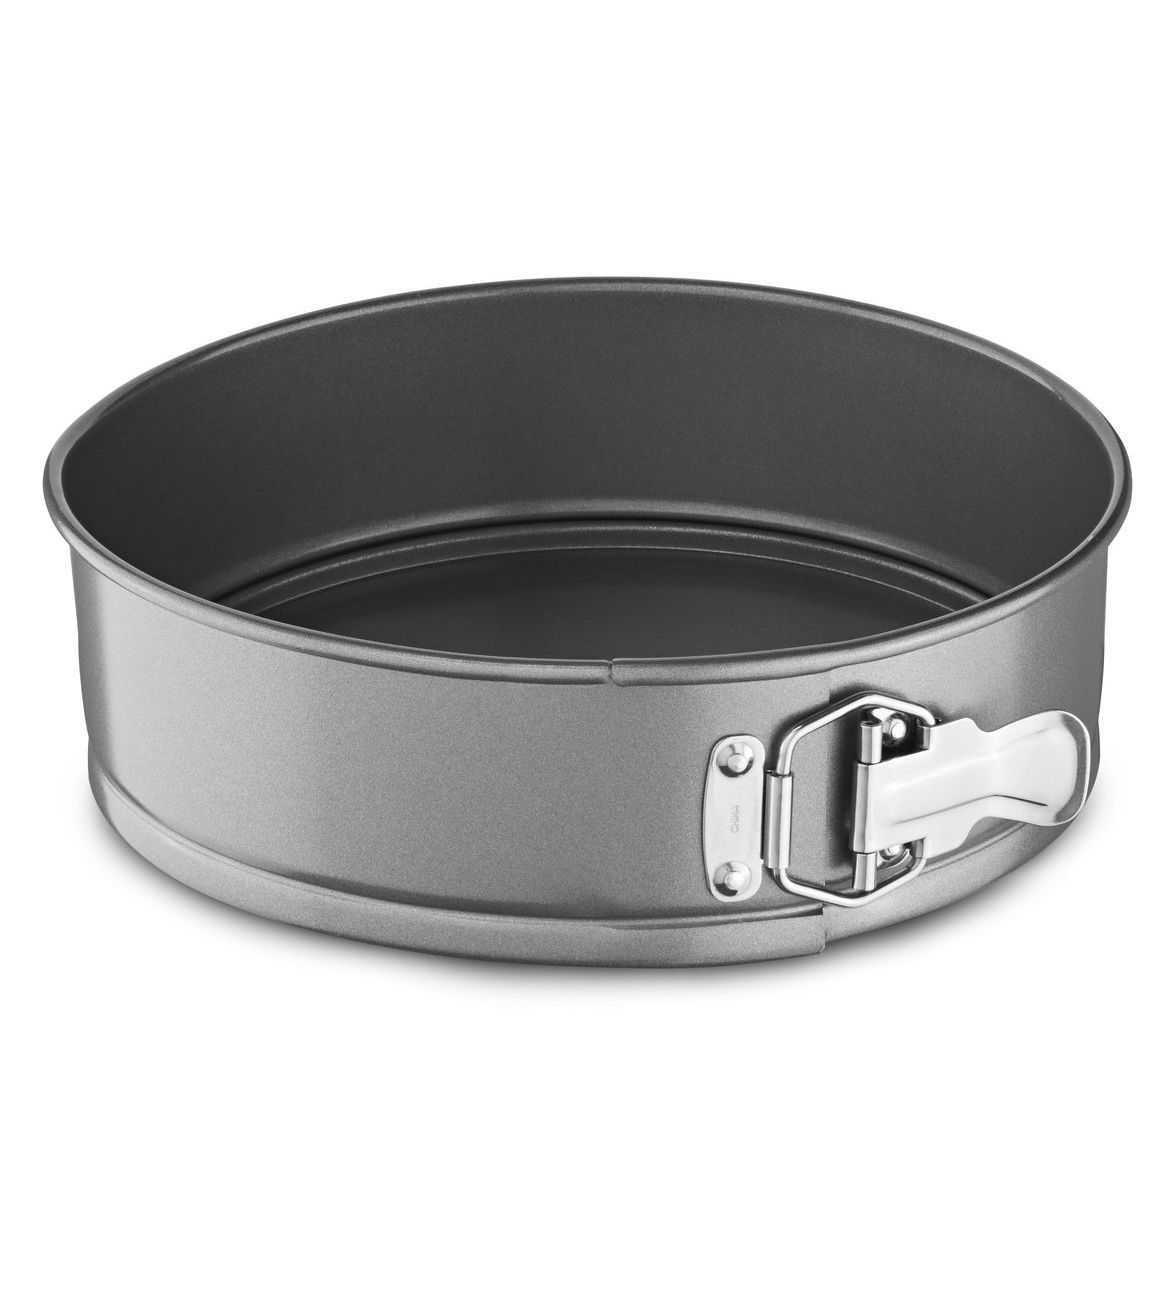 "KitchenAid Professional-Grade Nonstick 9"" Springform Pan"